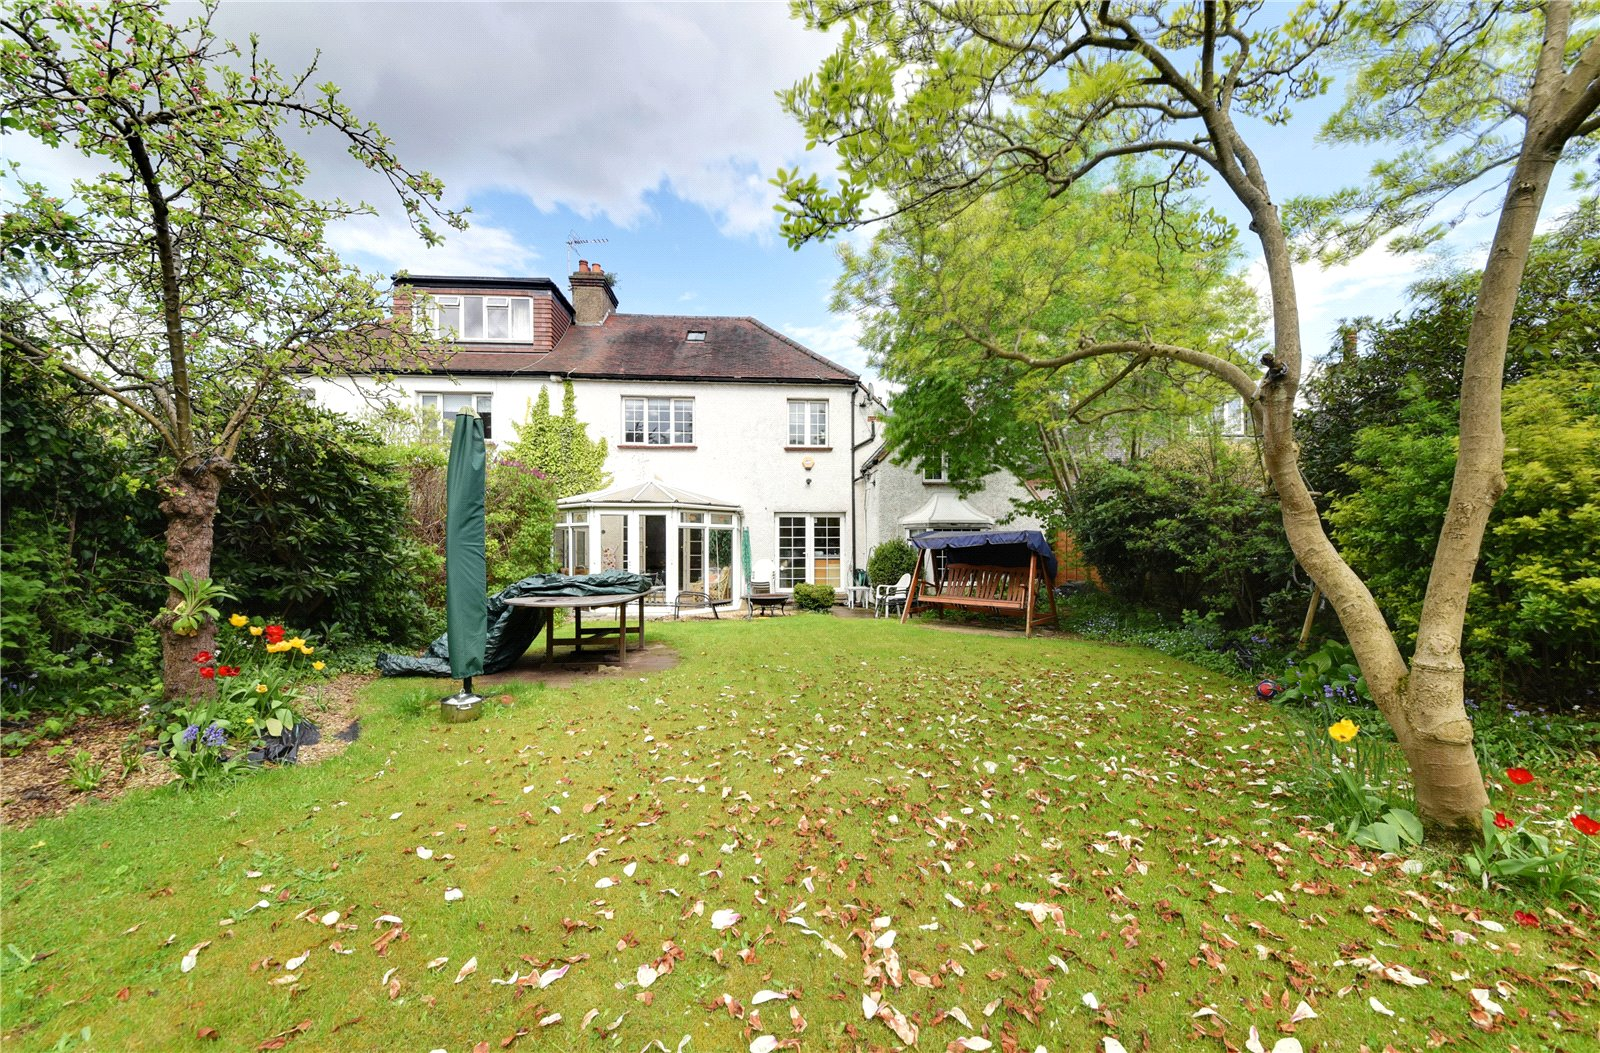 5 bed house for sale in Southgate, N14 4PX  - Property Image 5